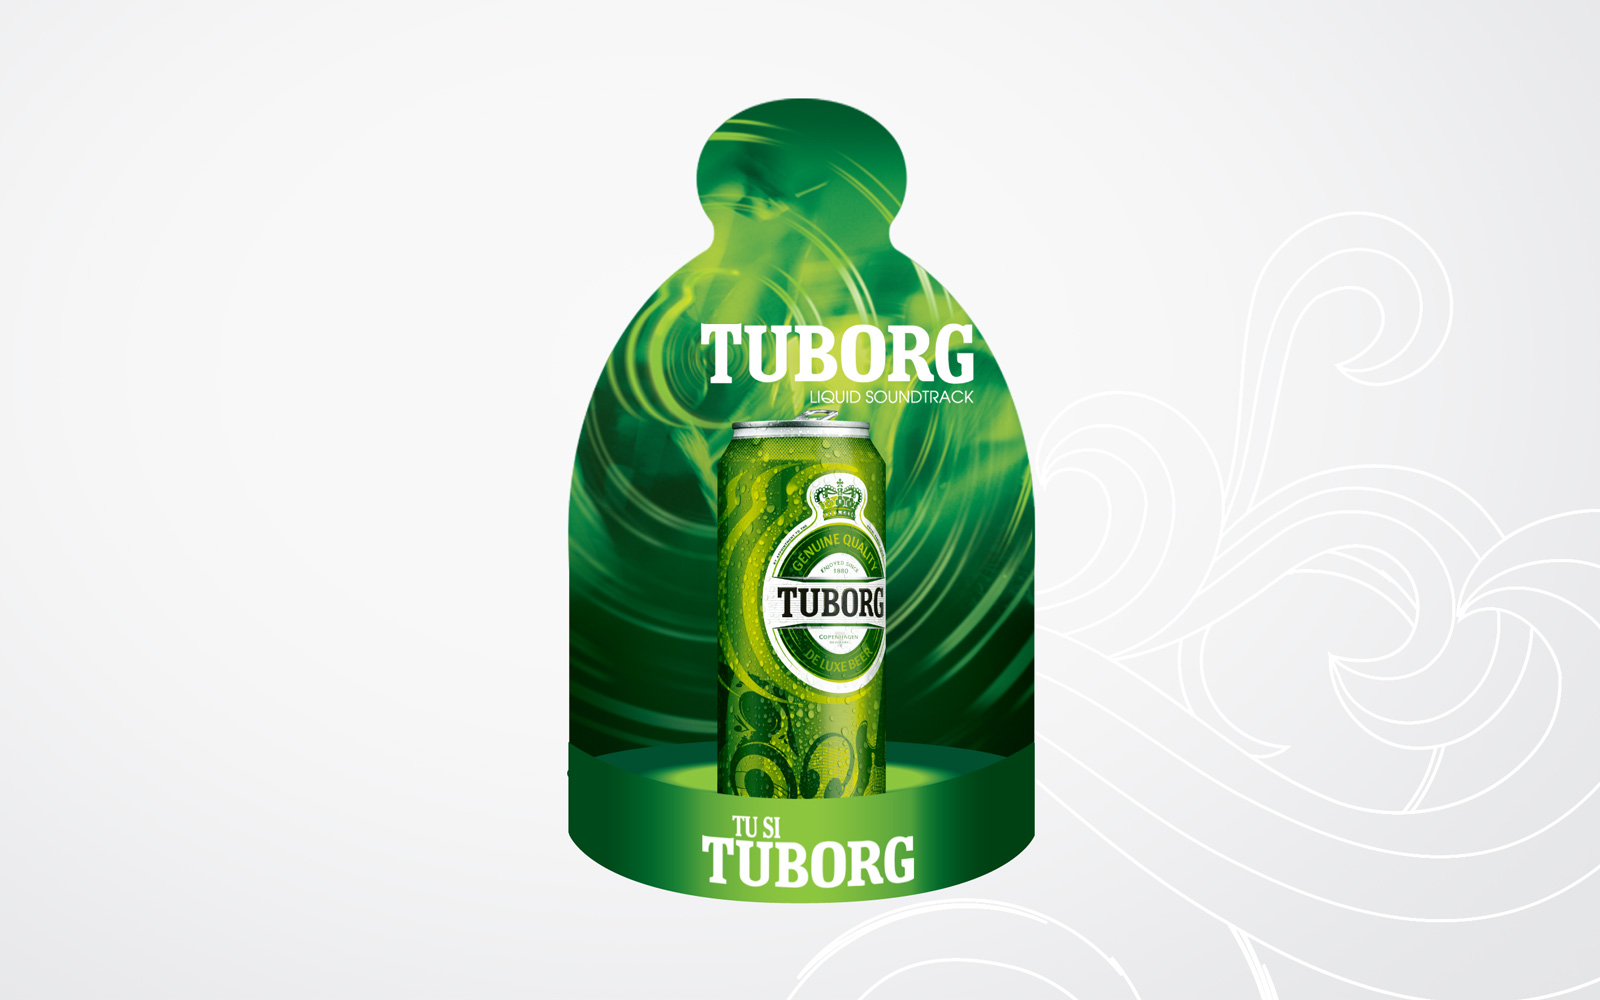 tuborg p.o.s design retail promotional campaign